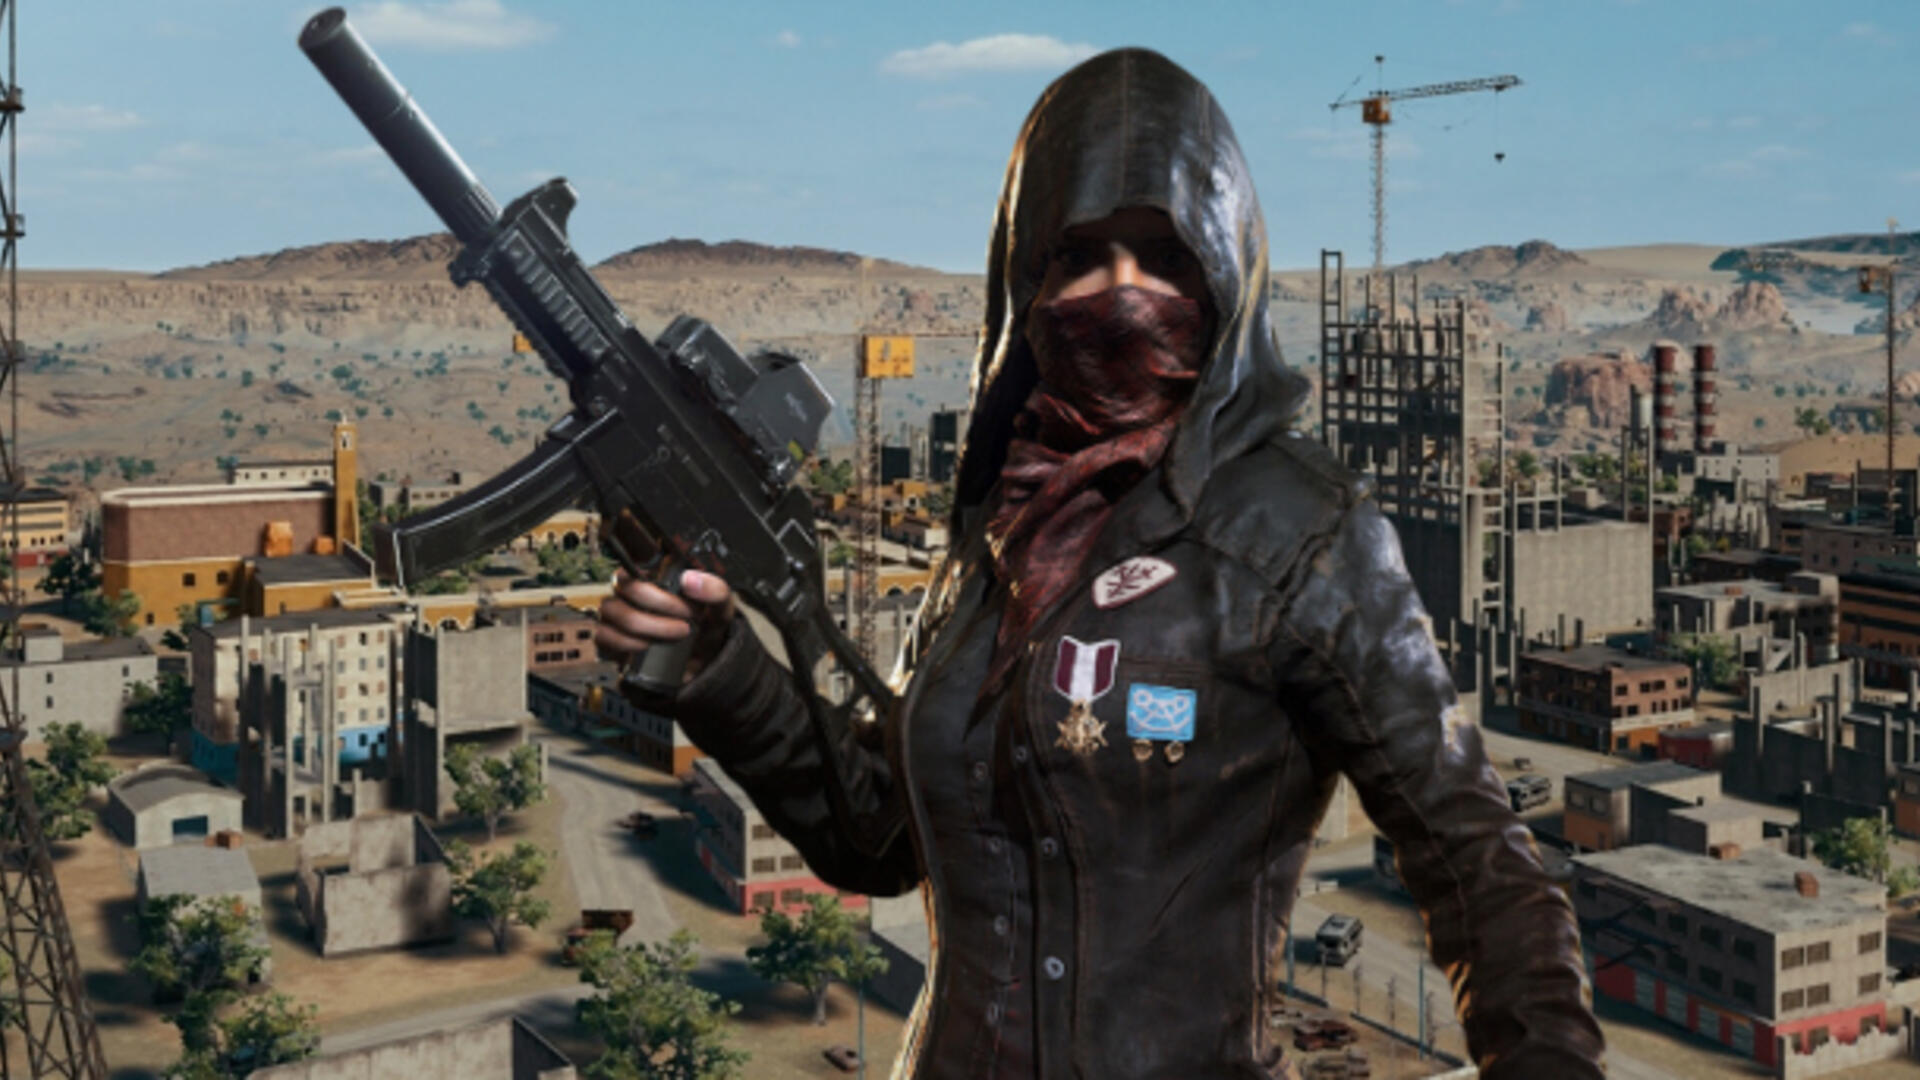 PUBG Patch Adds 12 Emotes, With More Planned | USgamer